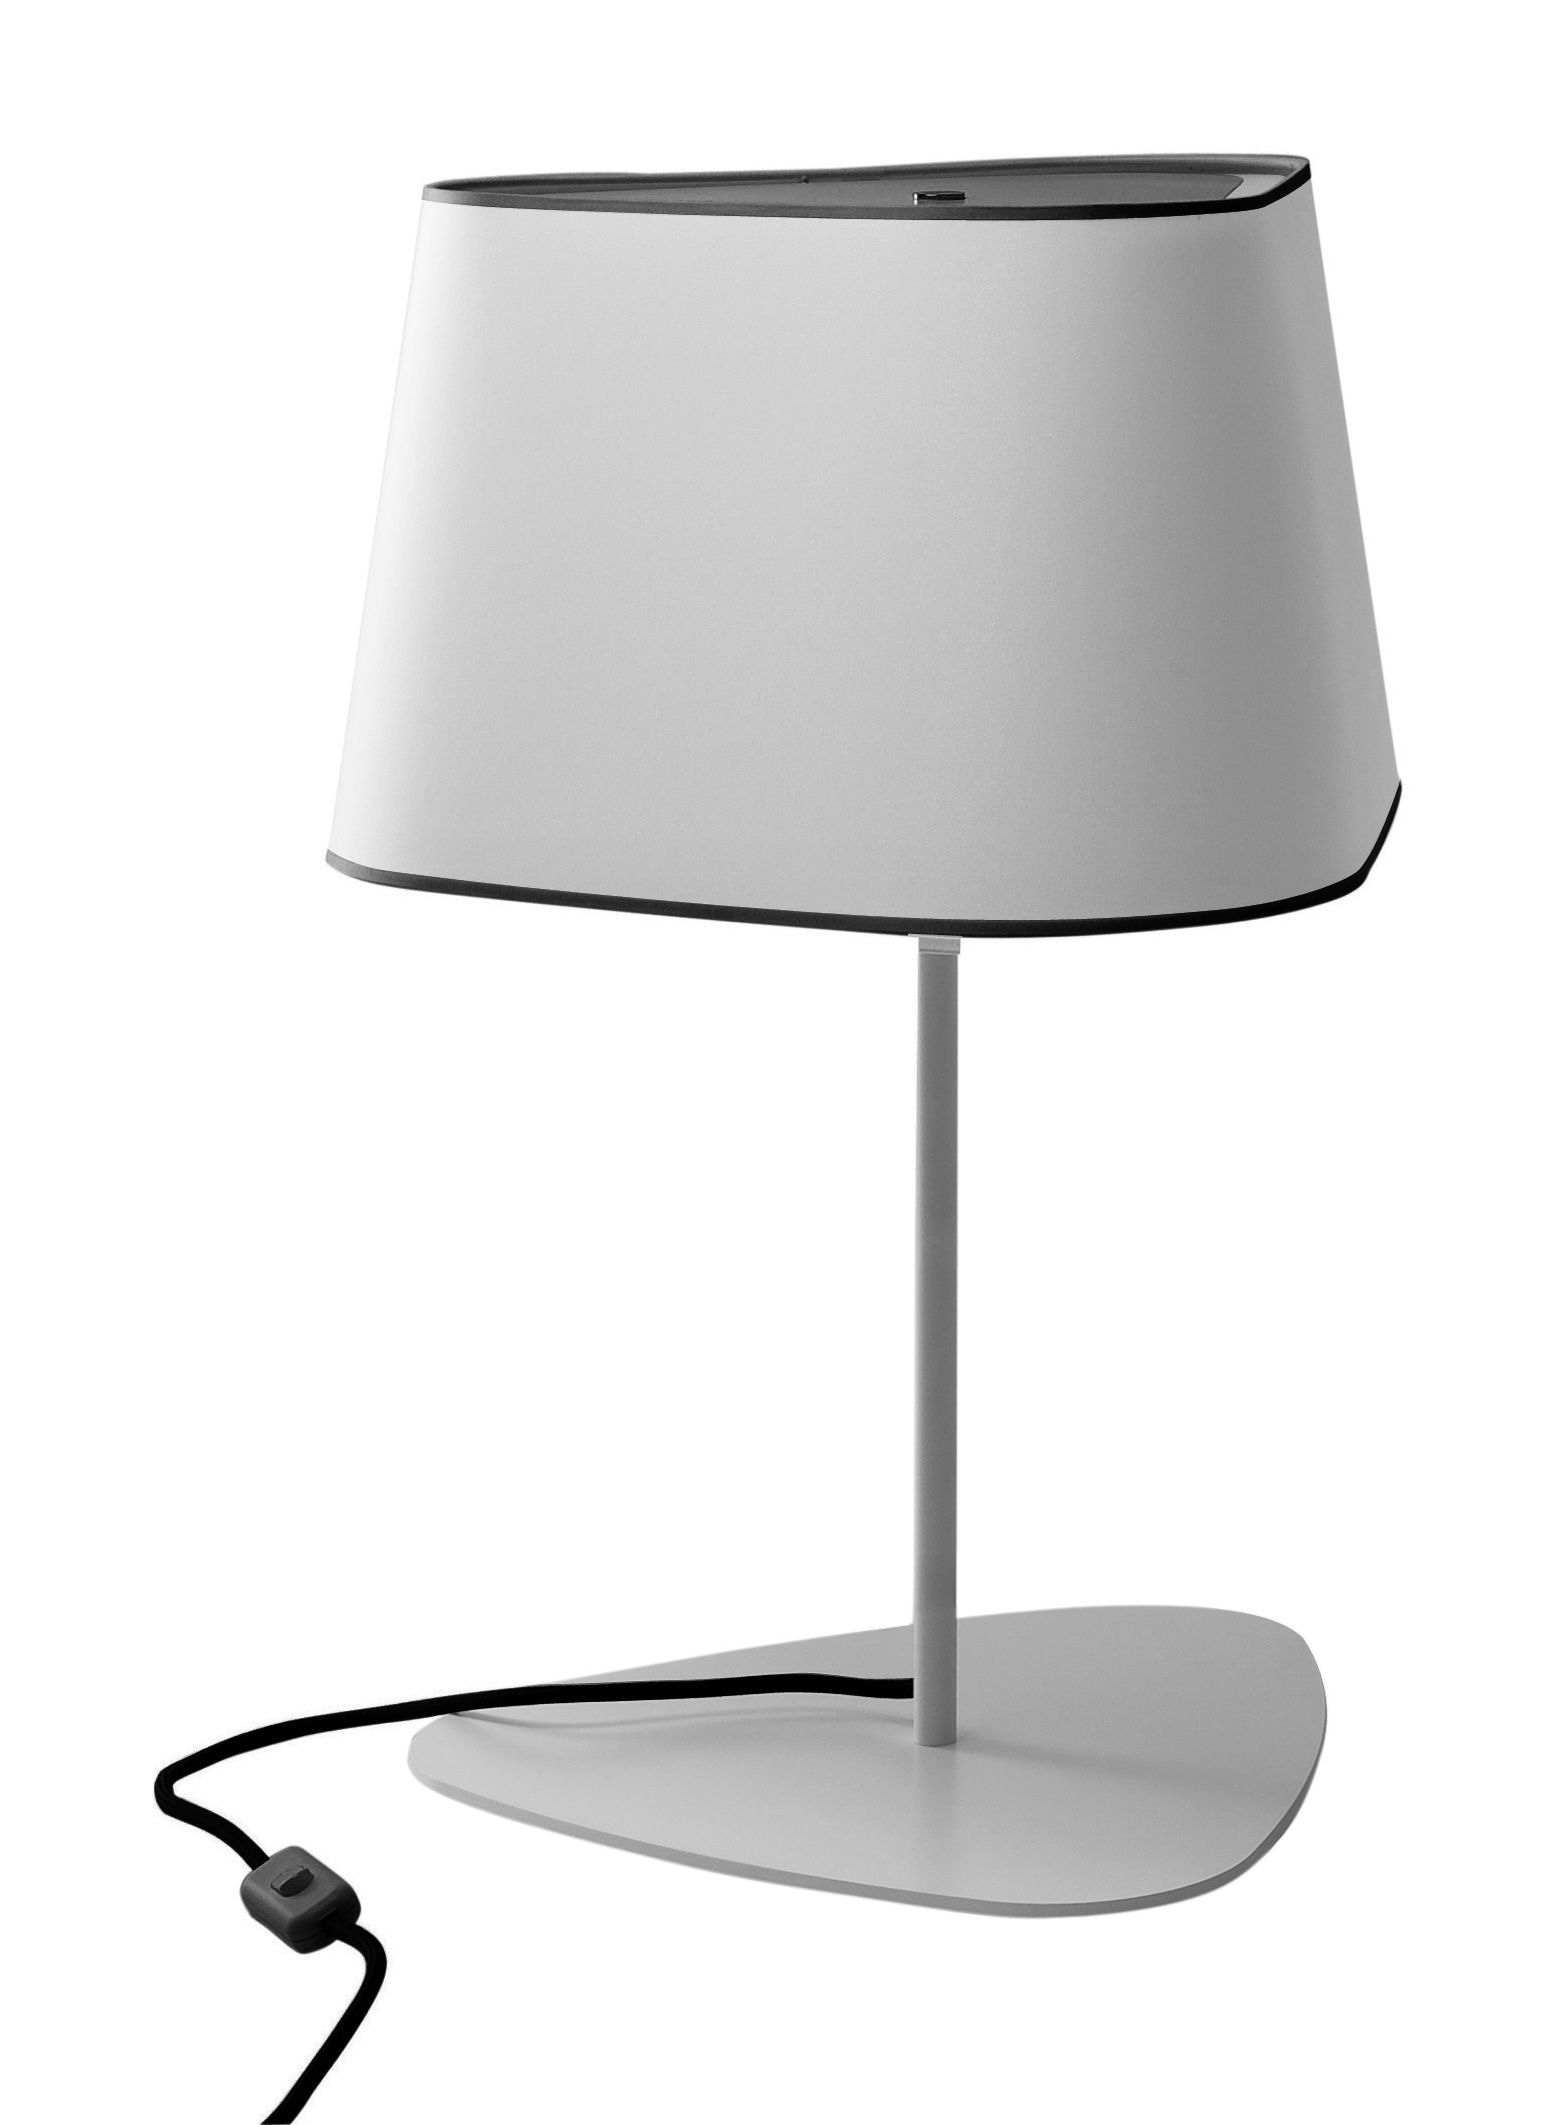 Lighting - Table Lamps - Petit Nuage Table lamp by Designheure - White fabric diffusing / Black border - Black cord - Fabric, Lacquered steel, Polycarbonate